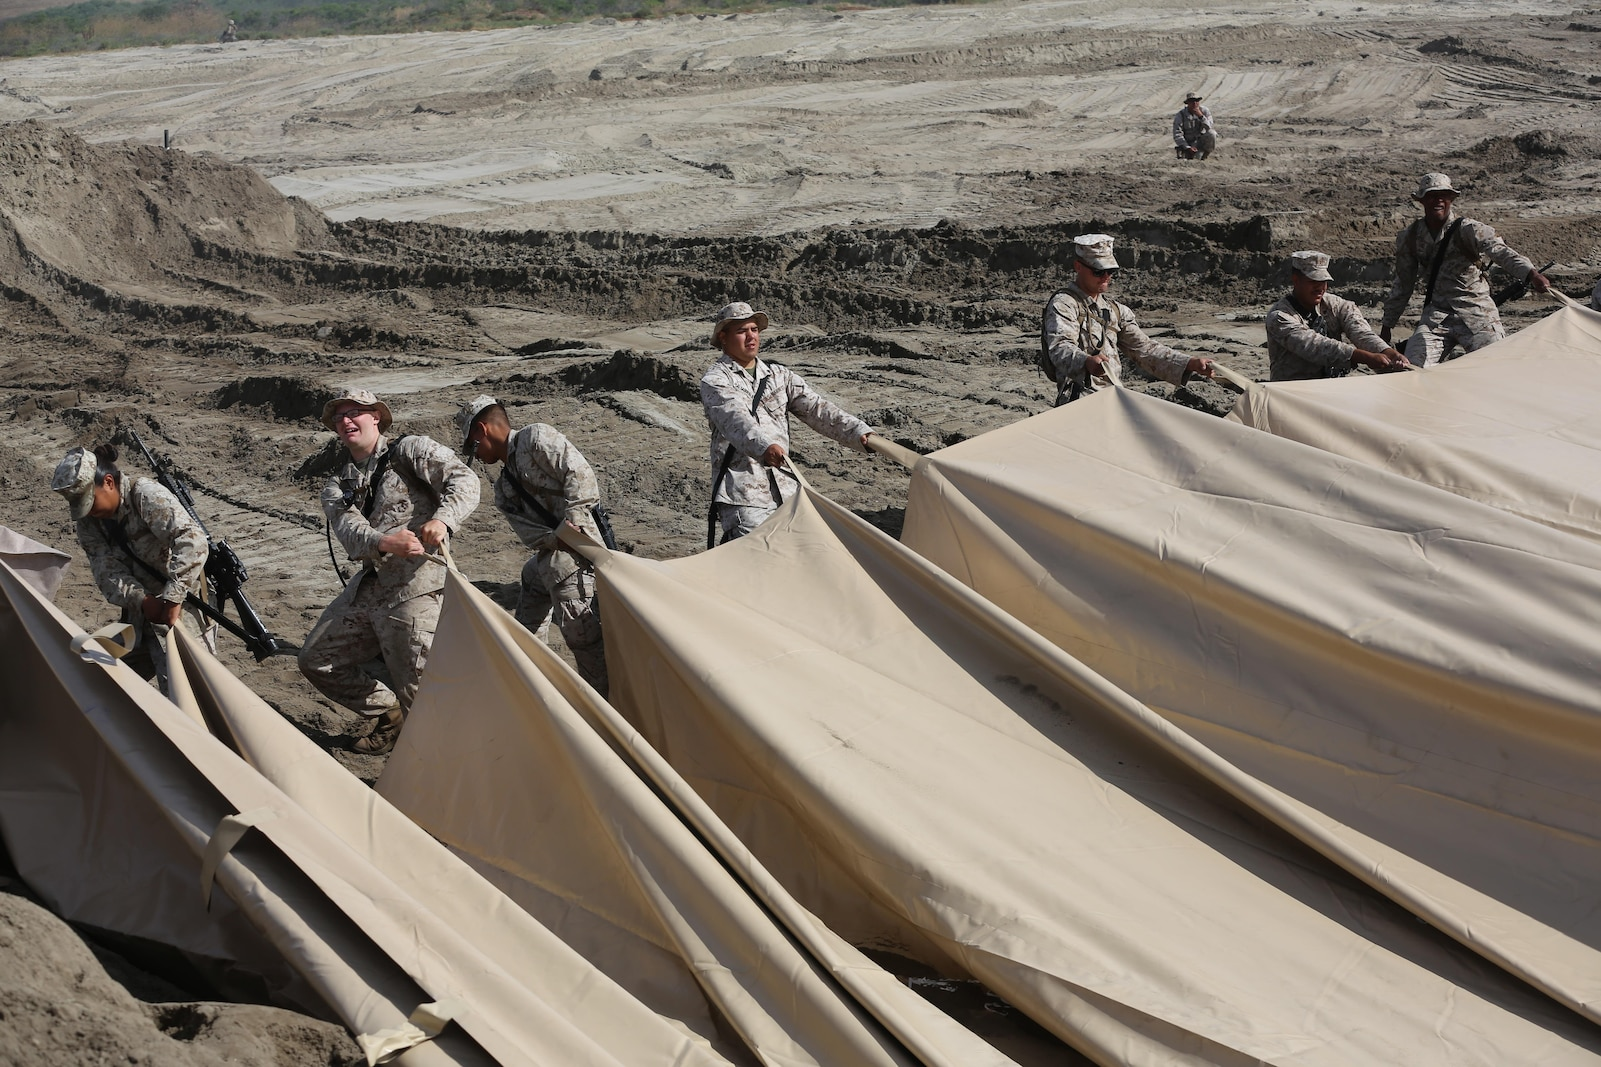 U.S. Marines with Bulk Fuel Company, 7th Engineer Support Battalion, 1st Marine Logistics Group, roll out a berm liner on Camp Pendleton, Calif., May 1, 2015. The berm liner is used as part of the Beach Unloading System used to house fuel, which is pumped from a ship off shore. (U.S. Marine Corps Photo by Cpl. Rodion Zabolotniy, Combat Camera/Released)